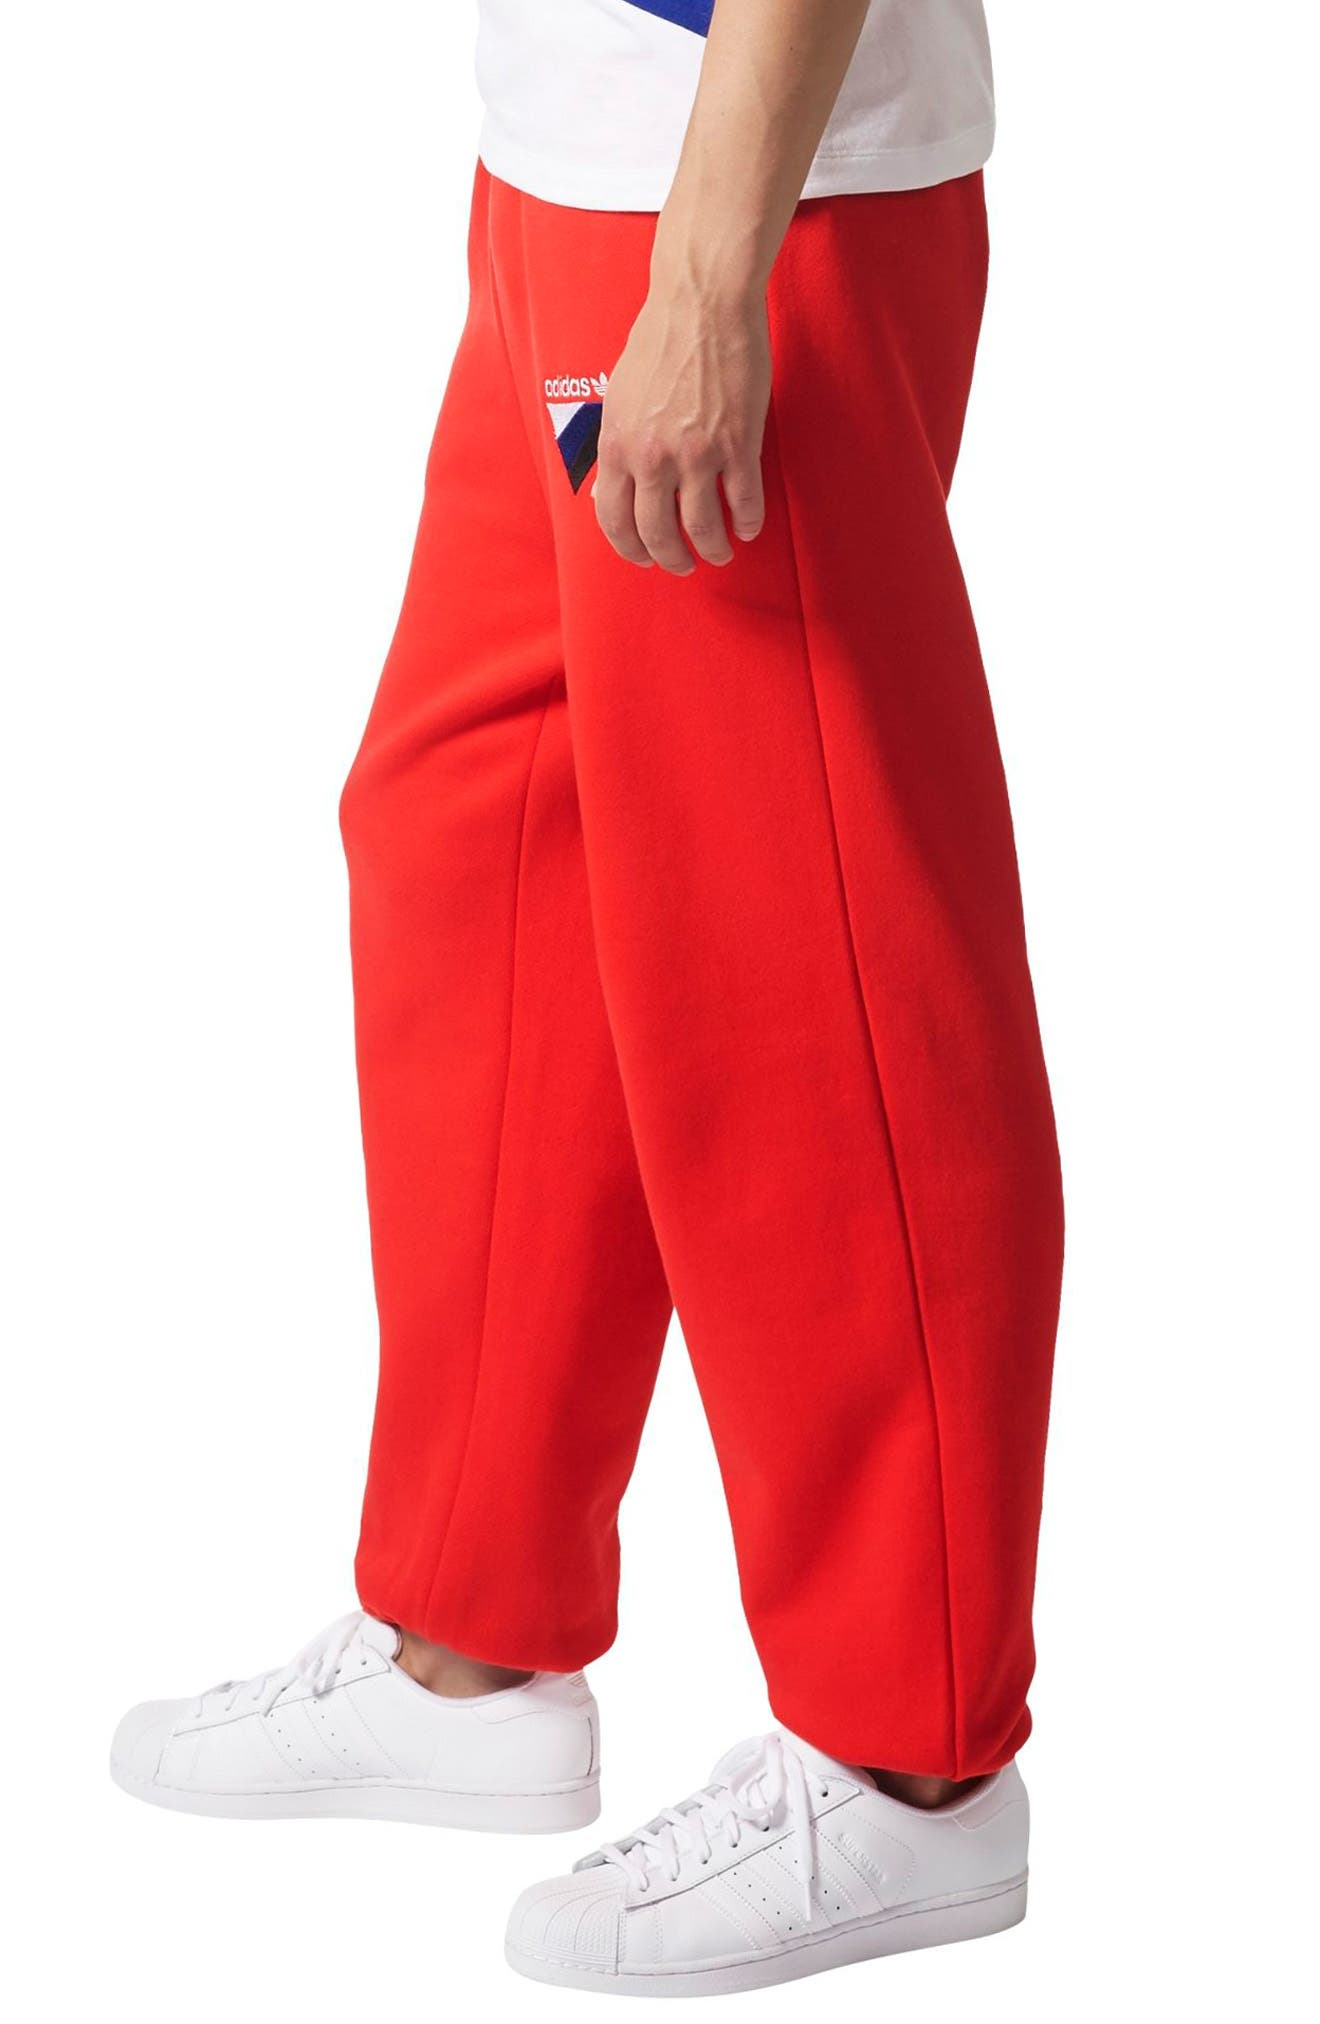 Originals Anichkov Sweatpants,                             Alternate thumbnail 3, color,                             600